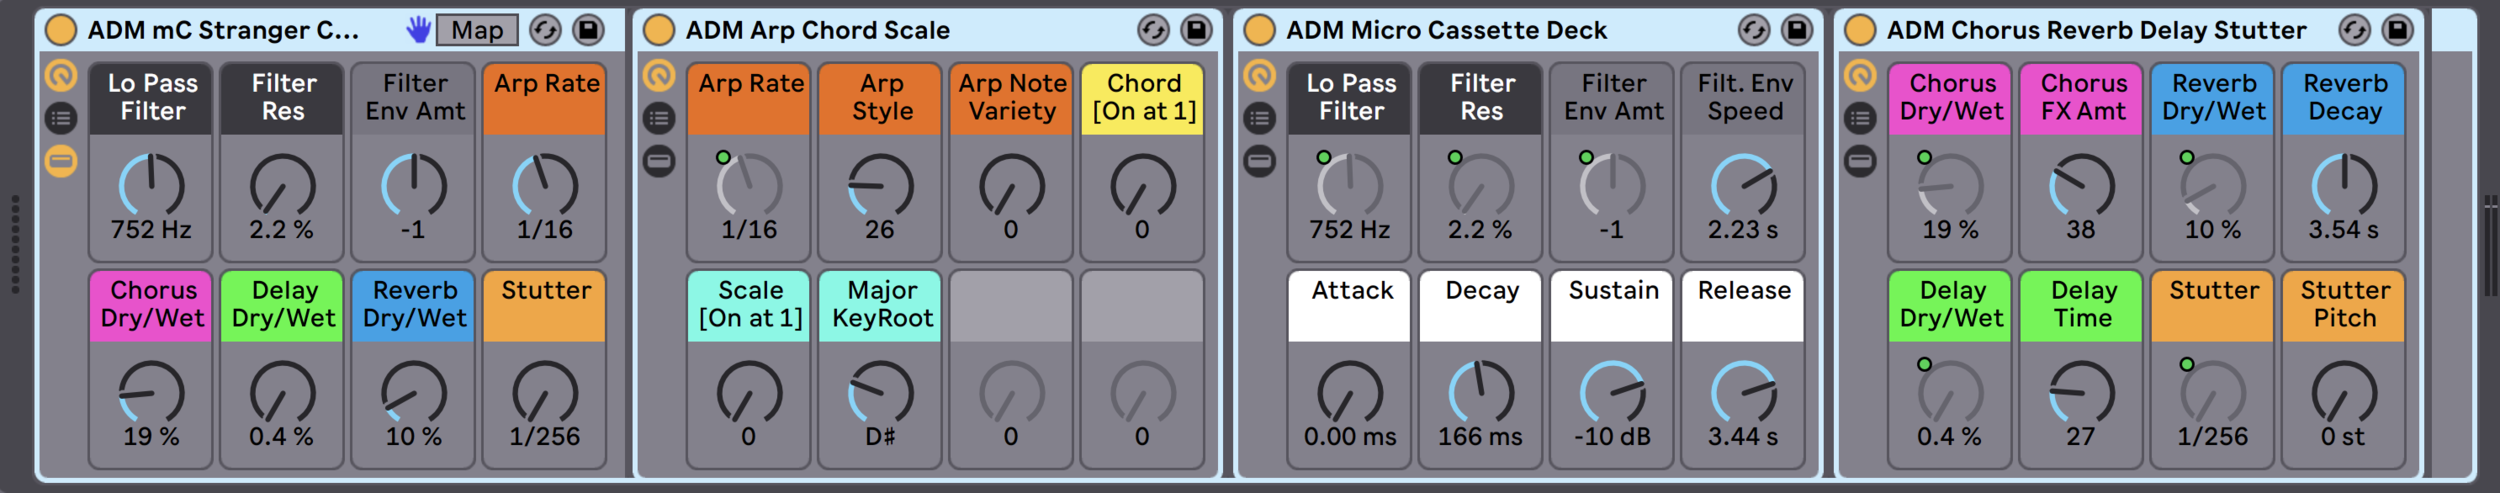 Every instrument of MICRO CASSETTE has Macro Controls for Filters, Arpeggiators, Chorus, Delay, Reverb, and Stutter Effects.